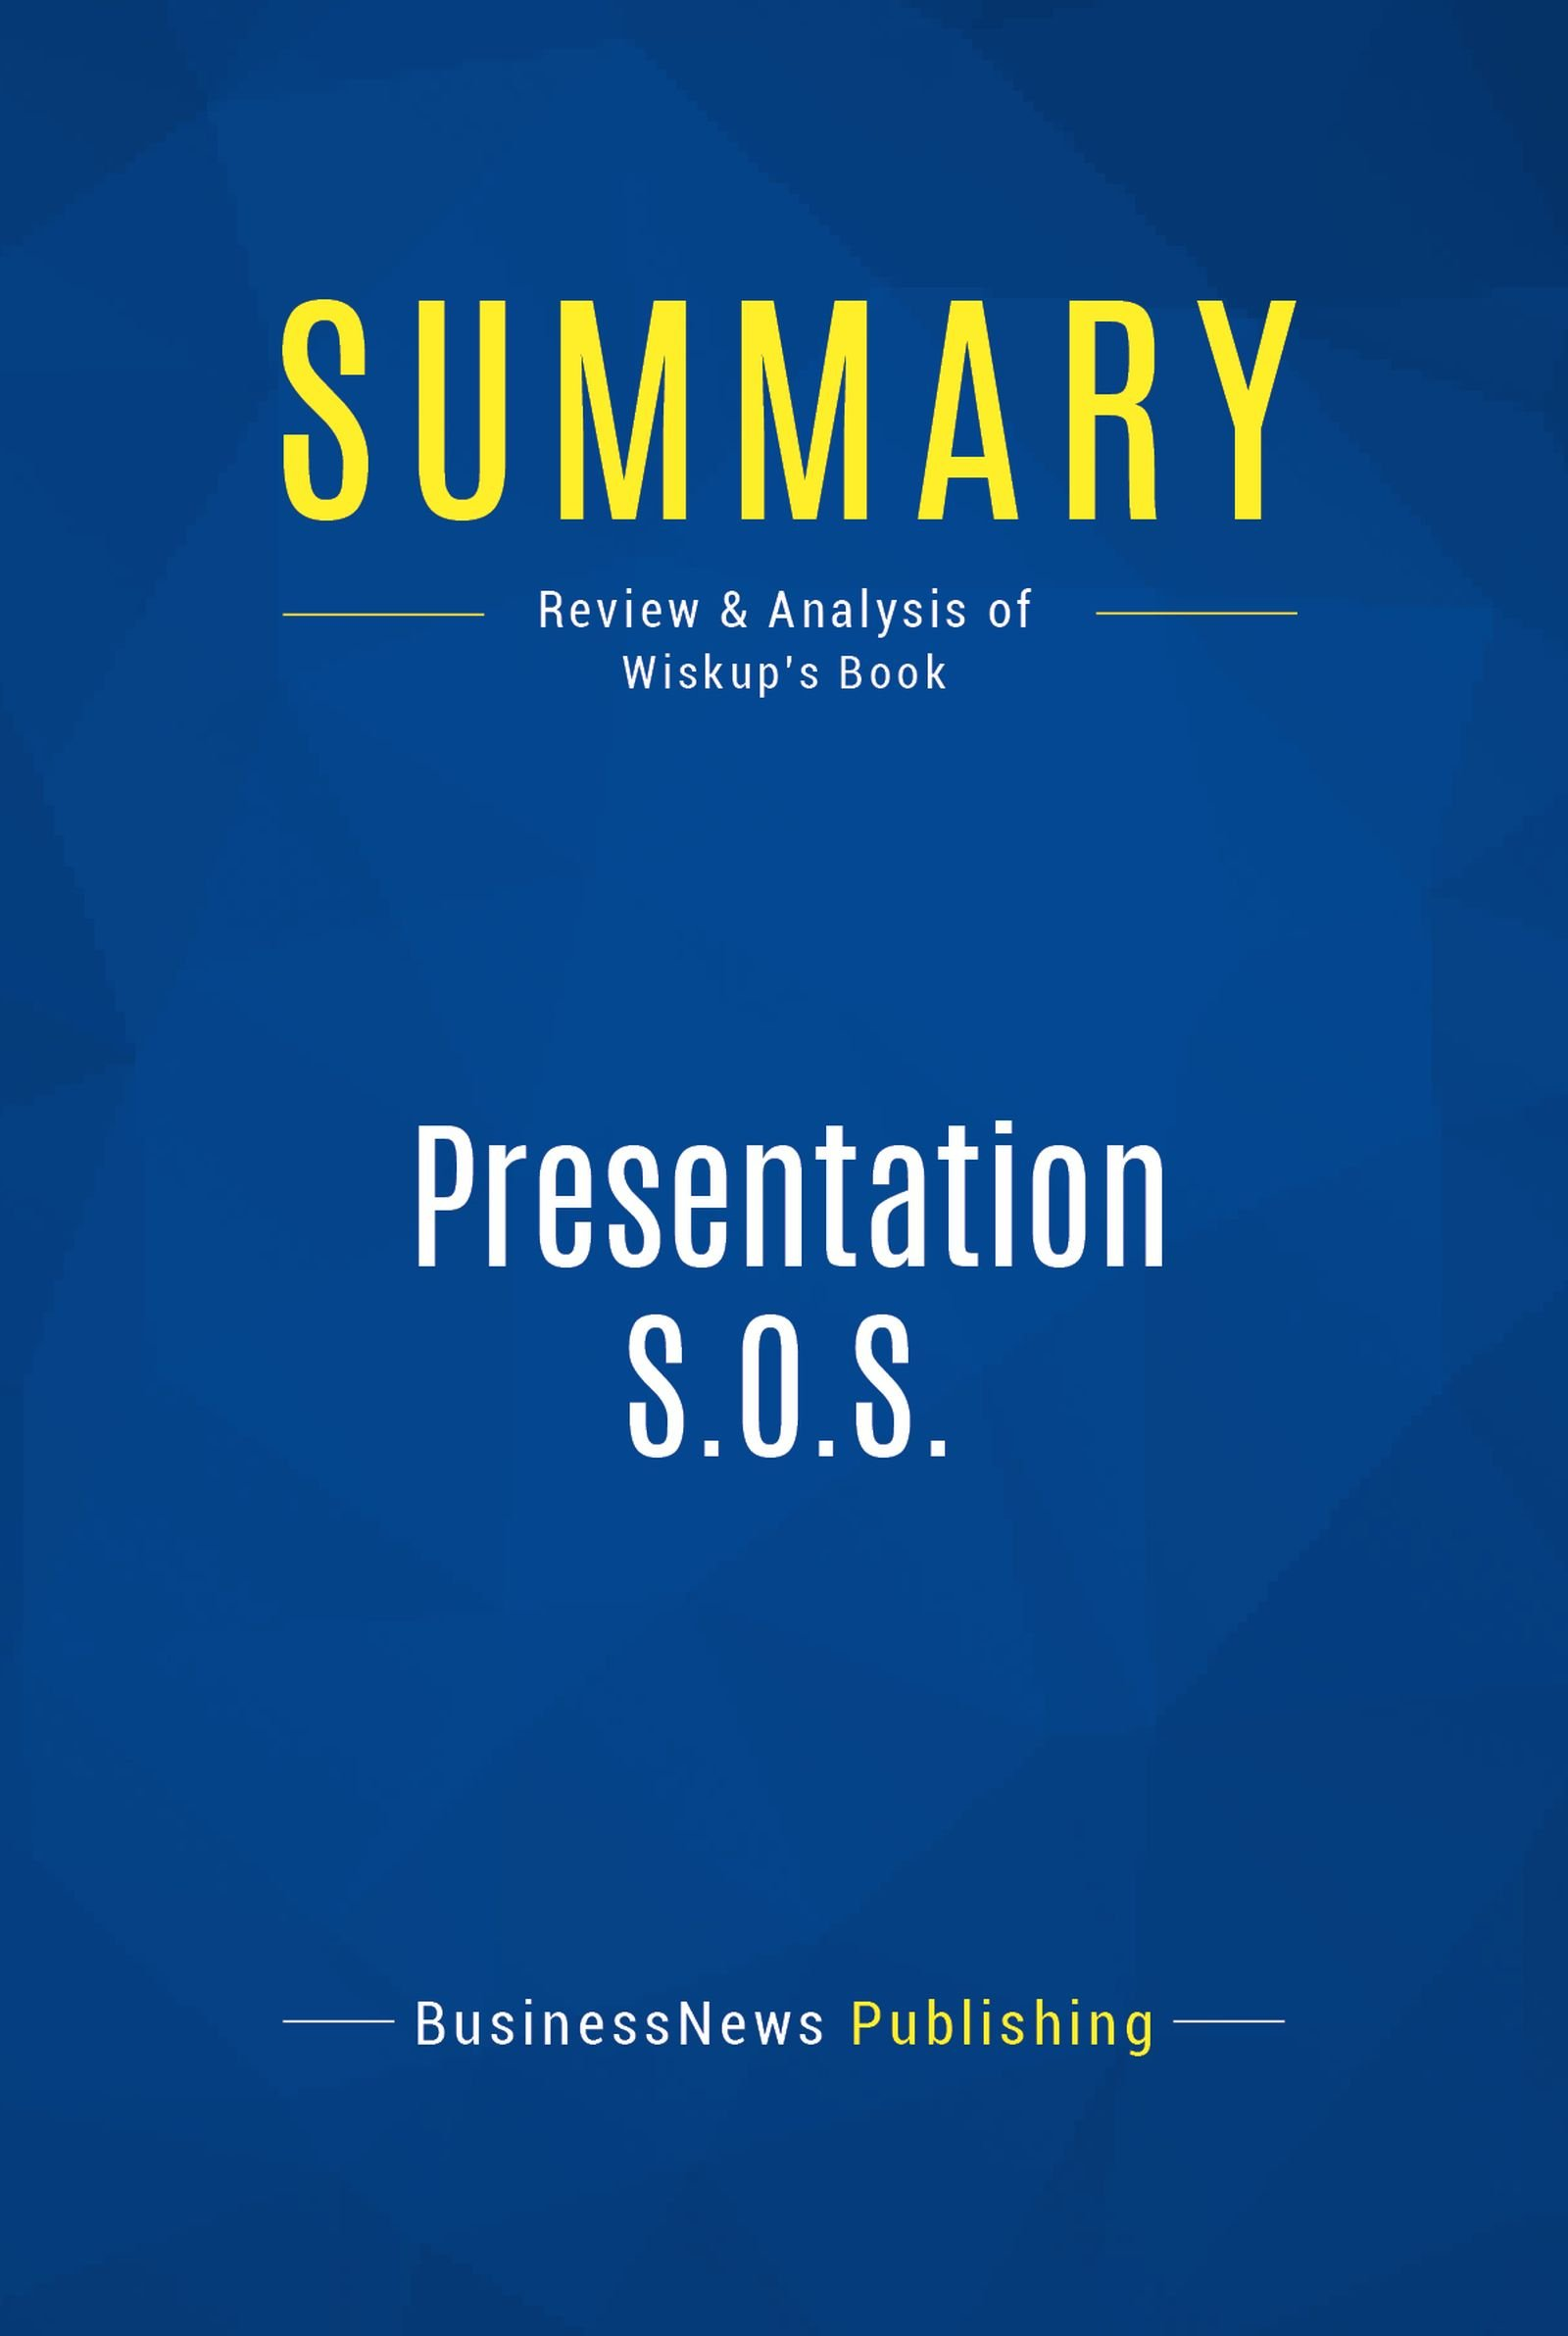 Summary: Presentation S.O.S.: Review and Analysis of Wiskup's Book